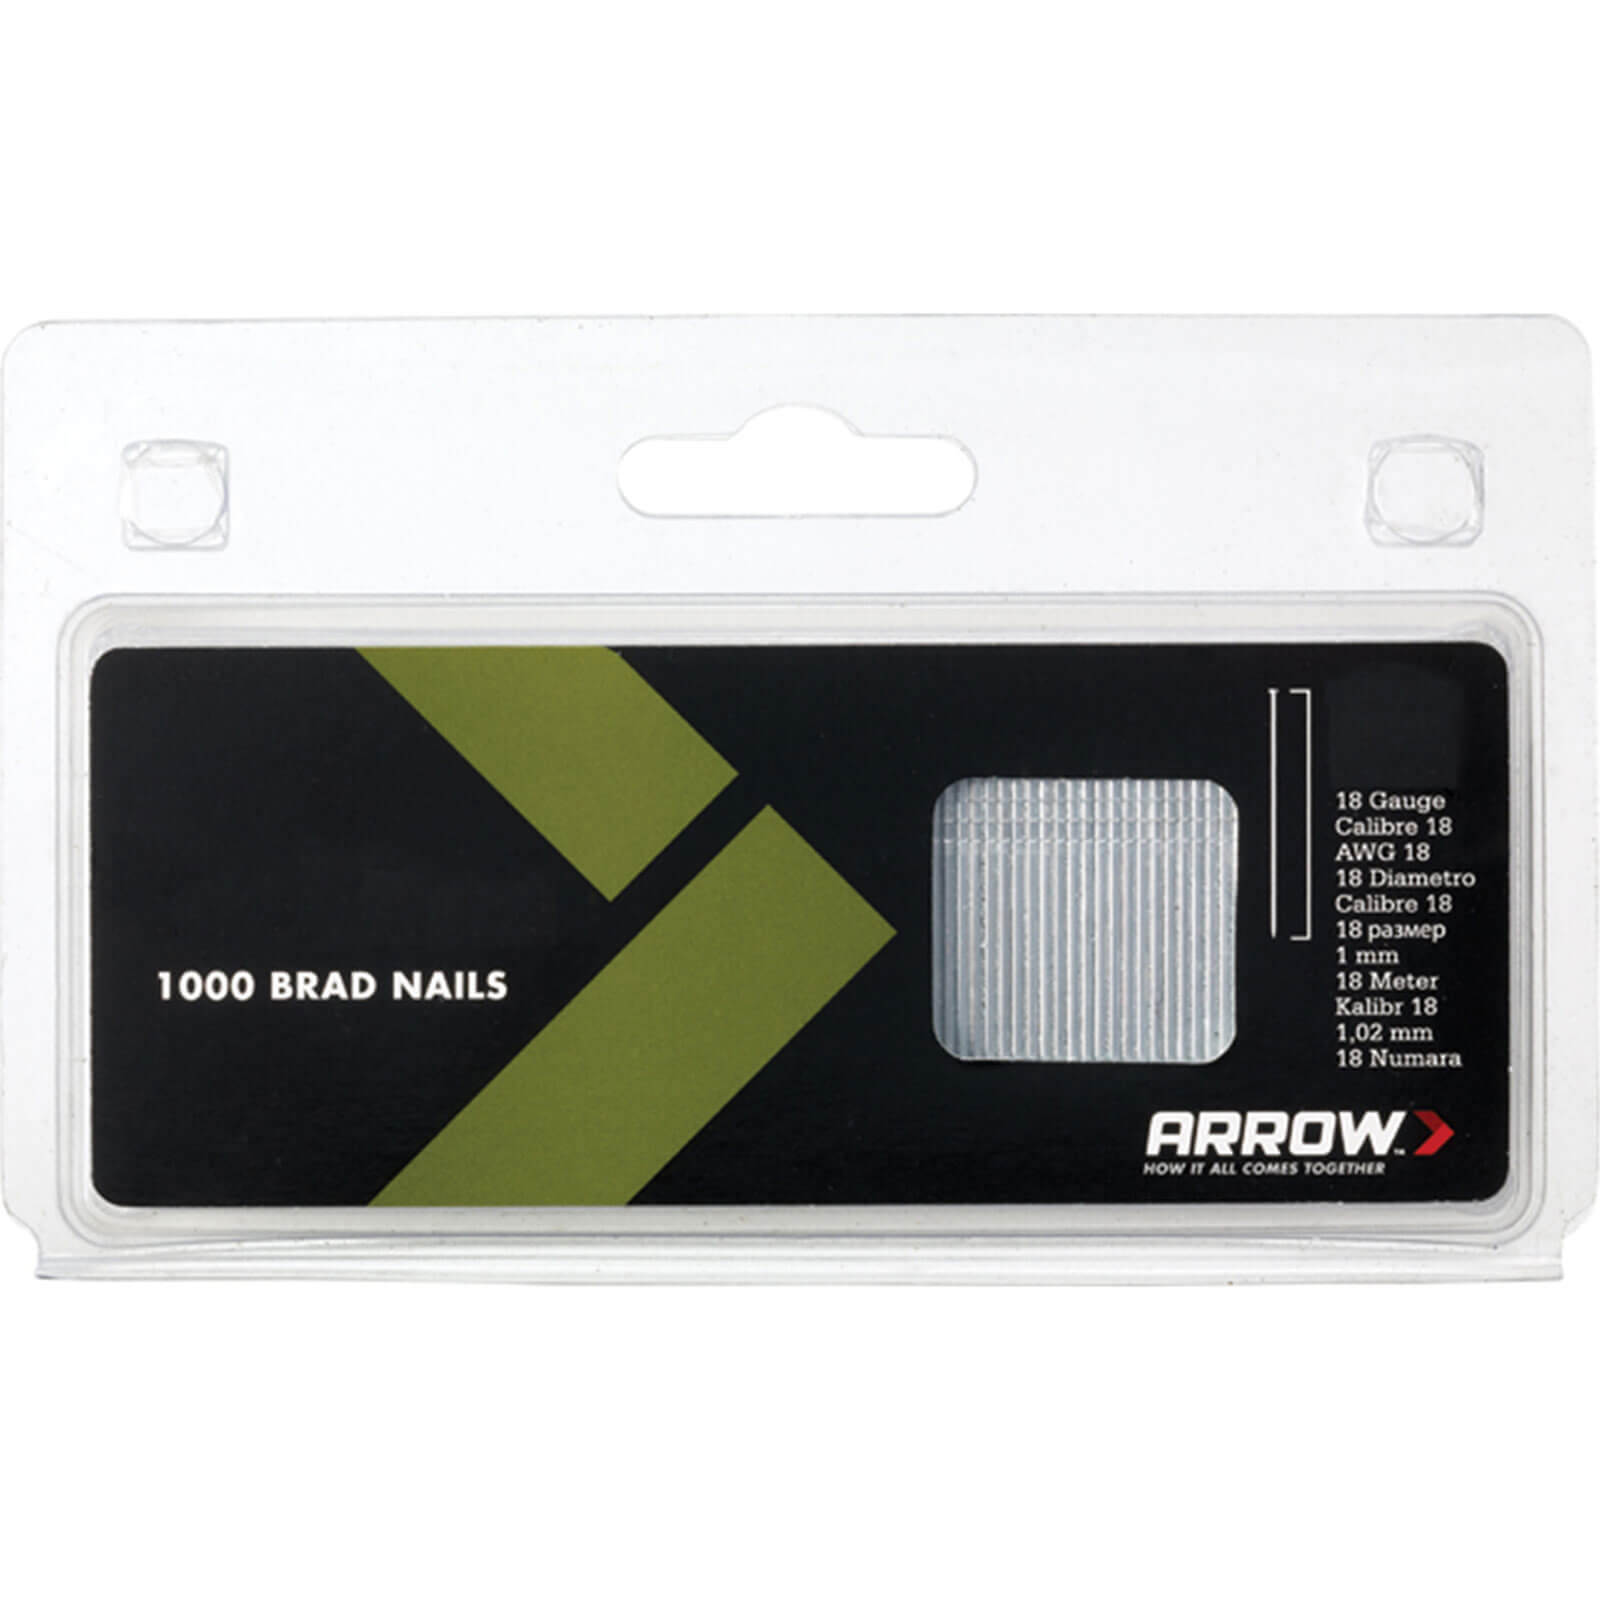 Compare prices for Arrow 18 Gauge Brad Nails 50mm Pack of 1000